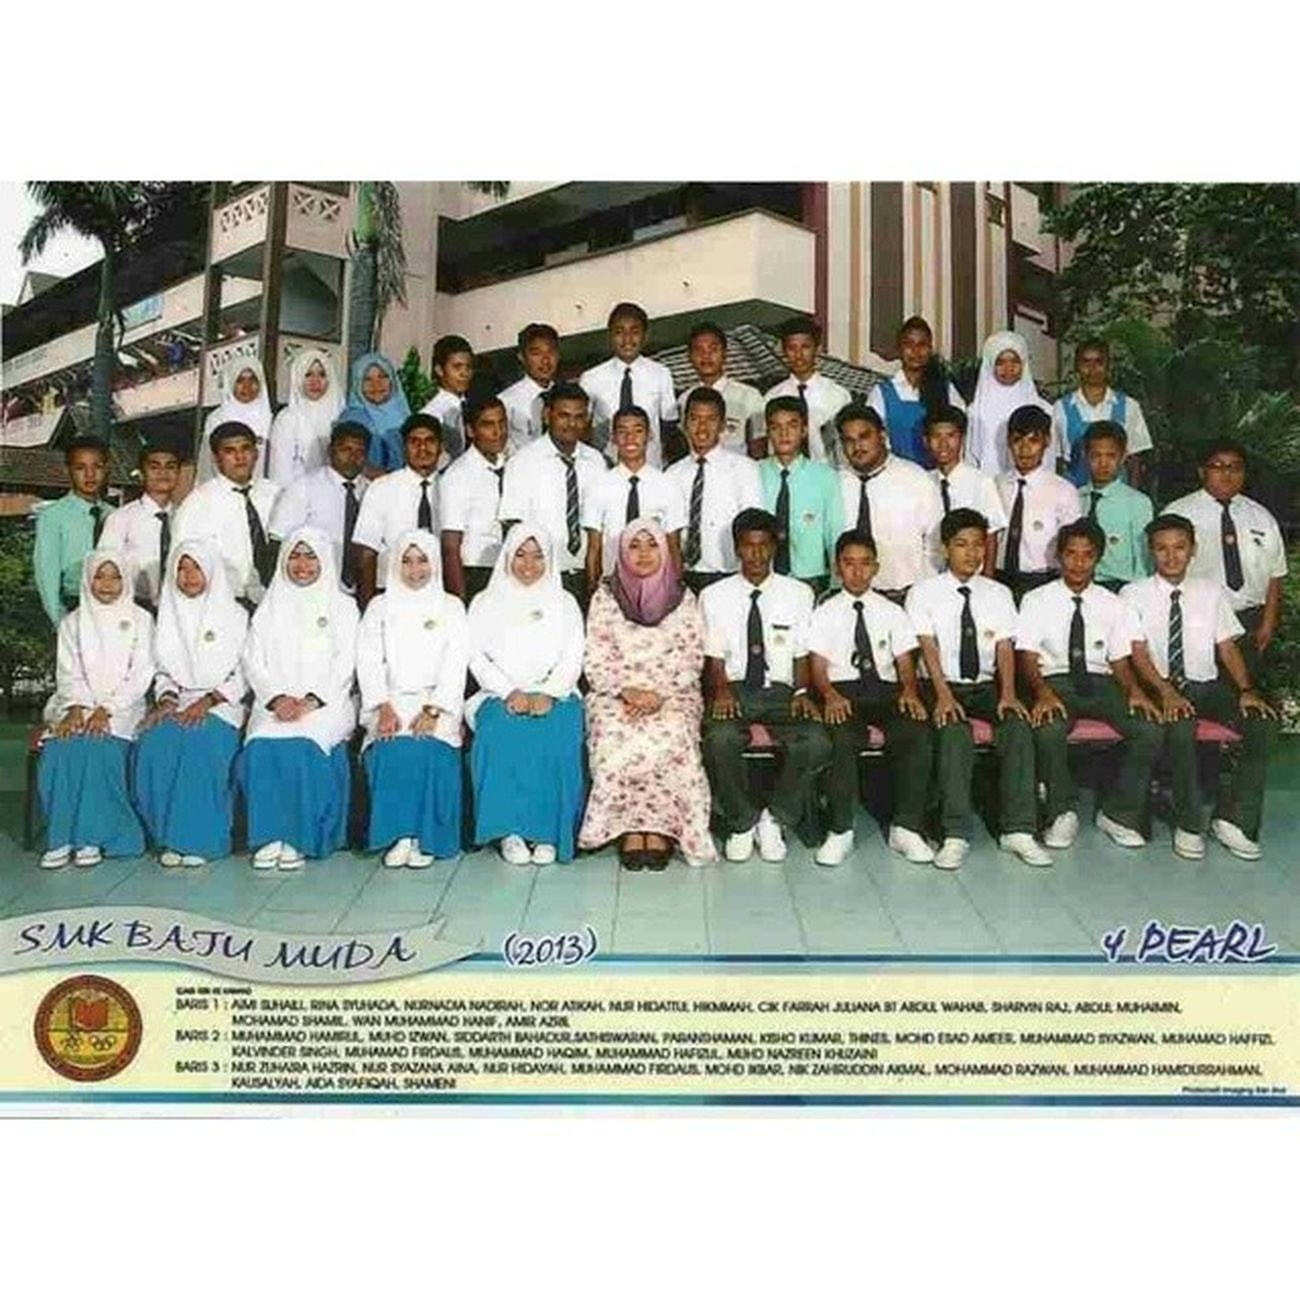 Throwback 4Pearl. The last photoshot with 4pearl of SMKBatuMuda 2013 ??? Rcnocrop